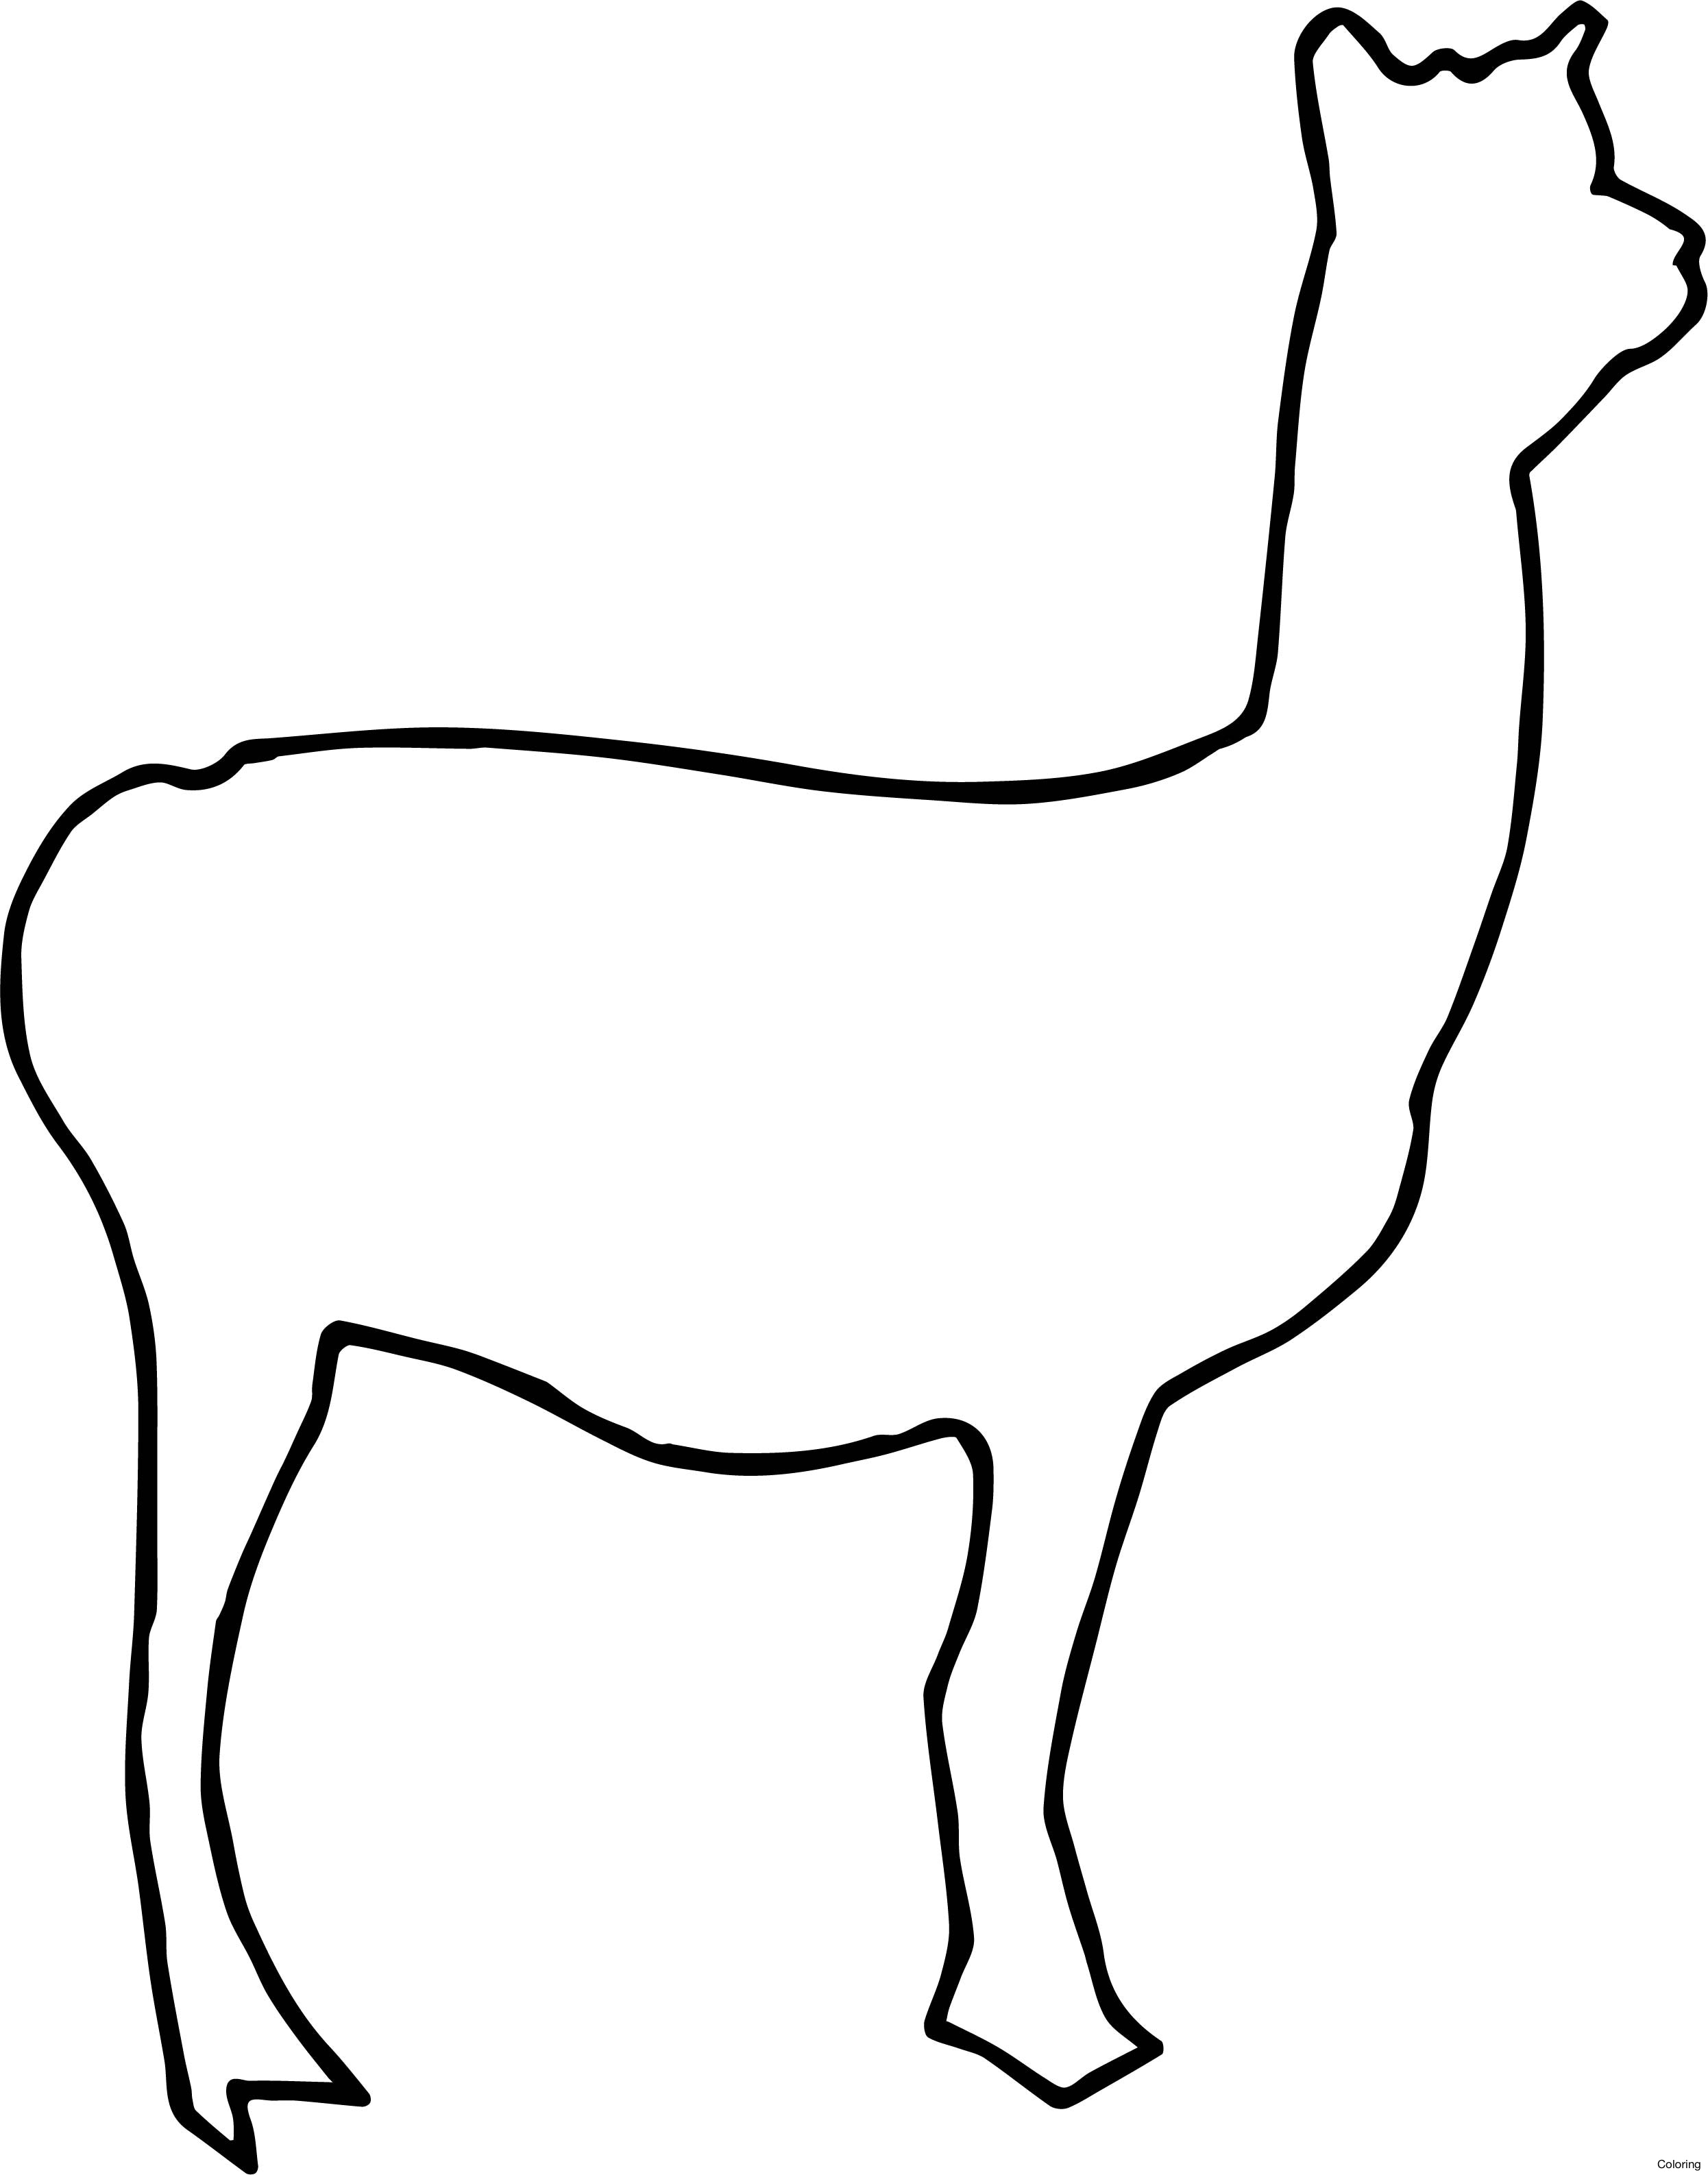 2492x3173 Print Coloring Pages Animal Llama 19f Baby Of For Diaiz